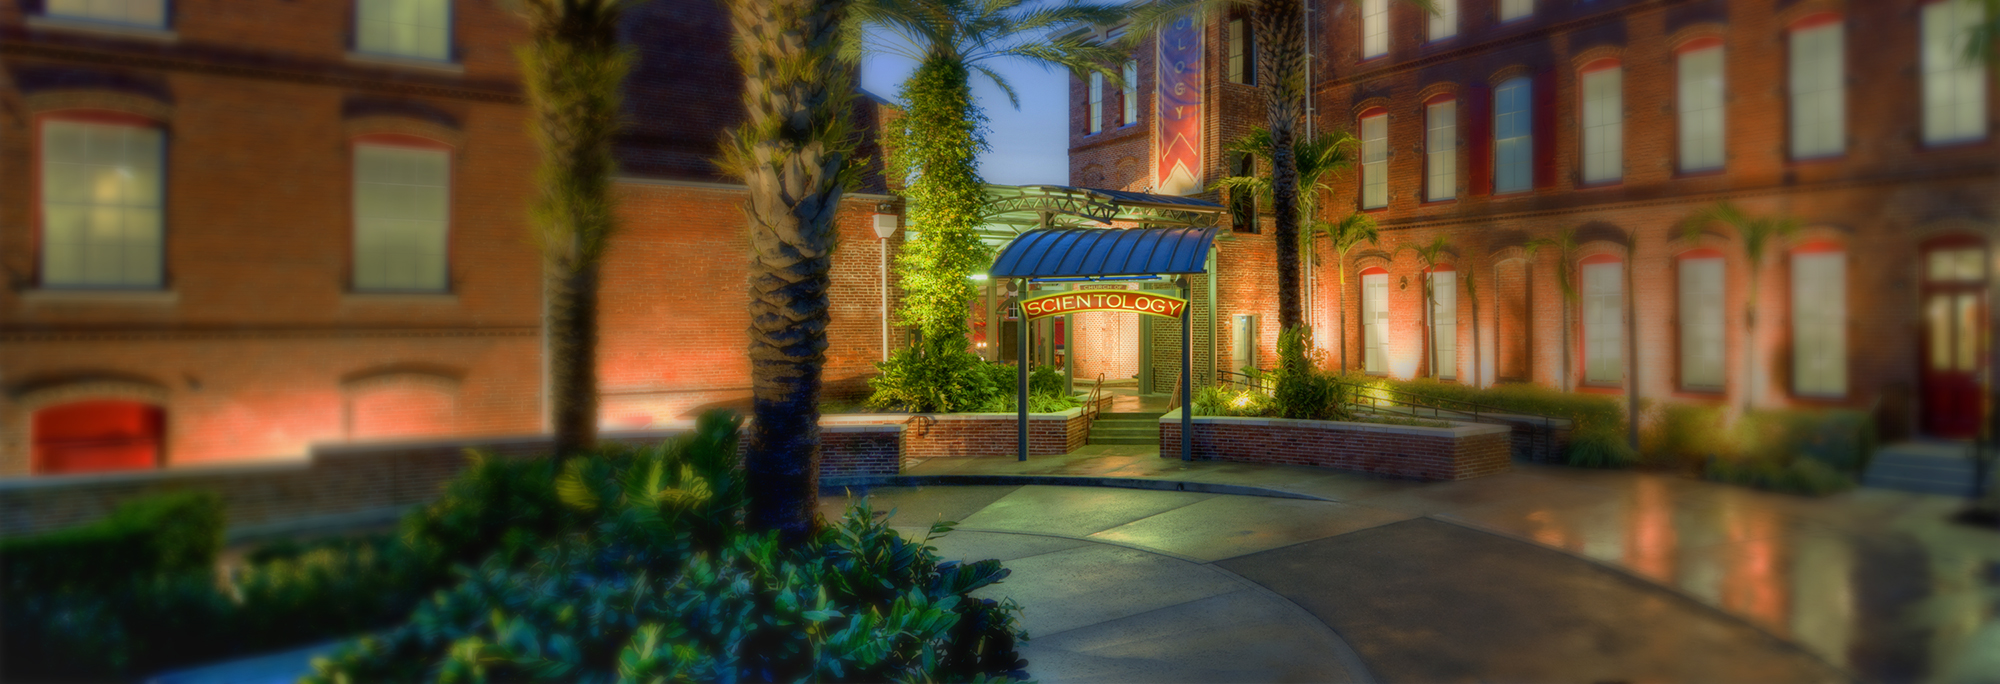 Tampa-Pano-Exterior-Magical-hdr-withblur